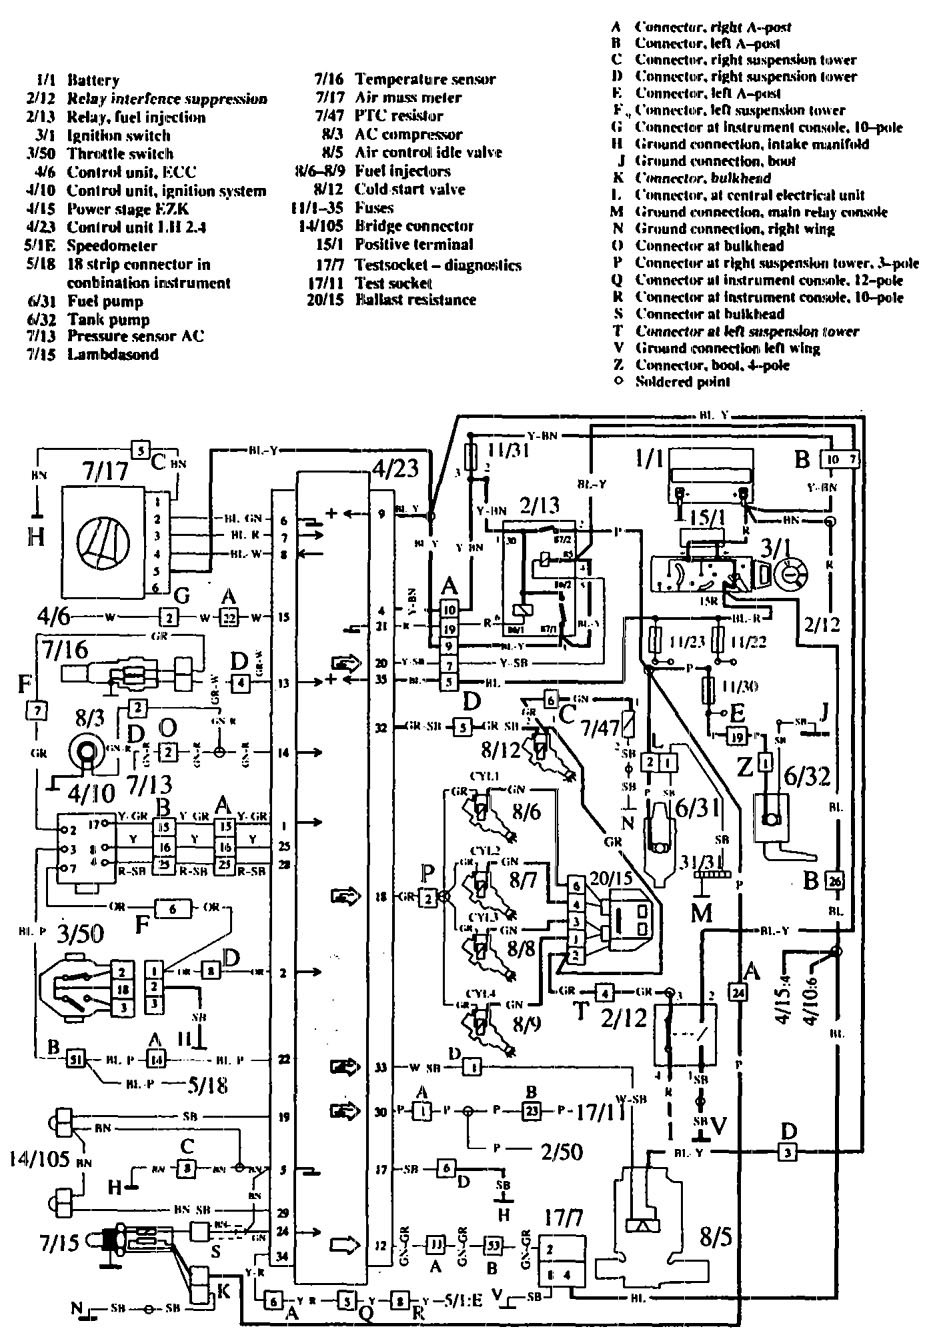 medium resolution of 95 volvo 940 radio wiring diagram volvo fuel pump wiring 1995 volvo 960 wiring diagram 1993